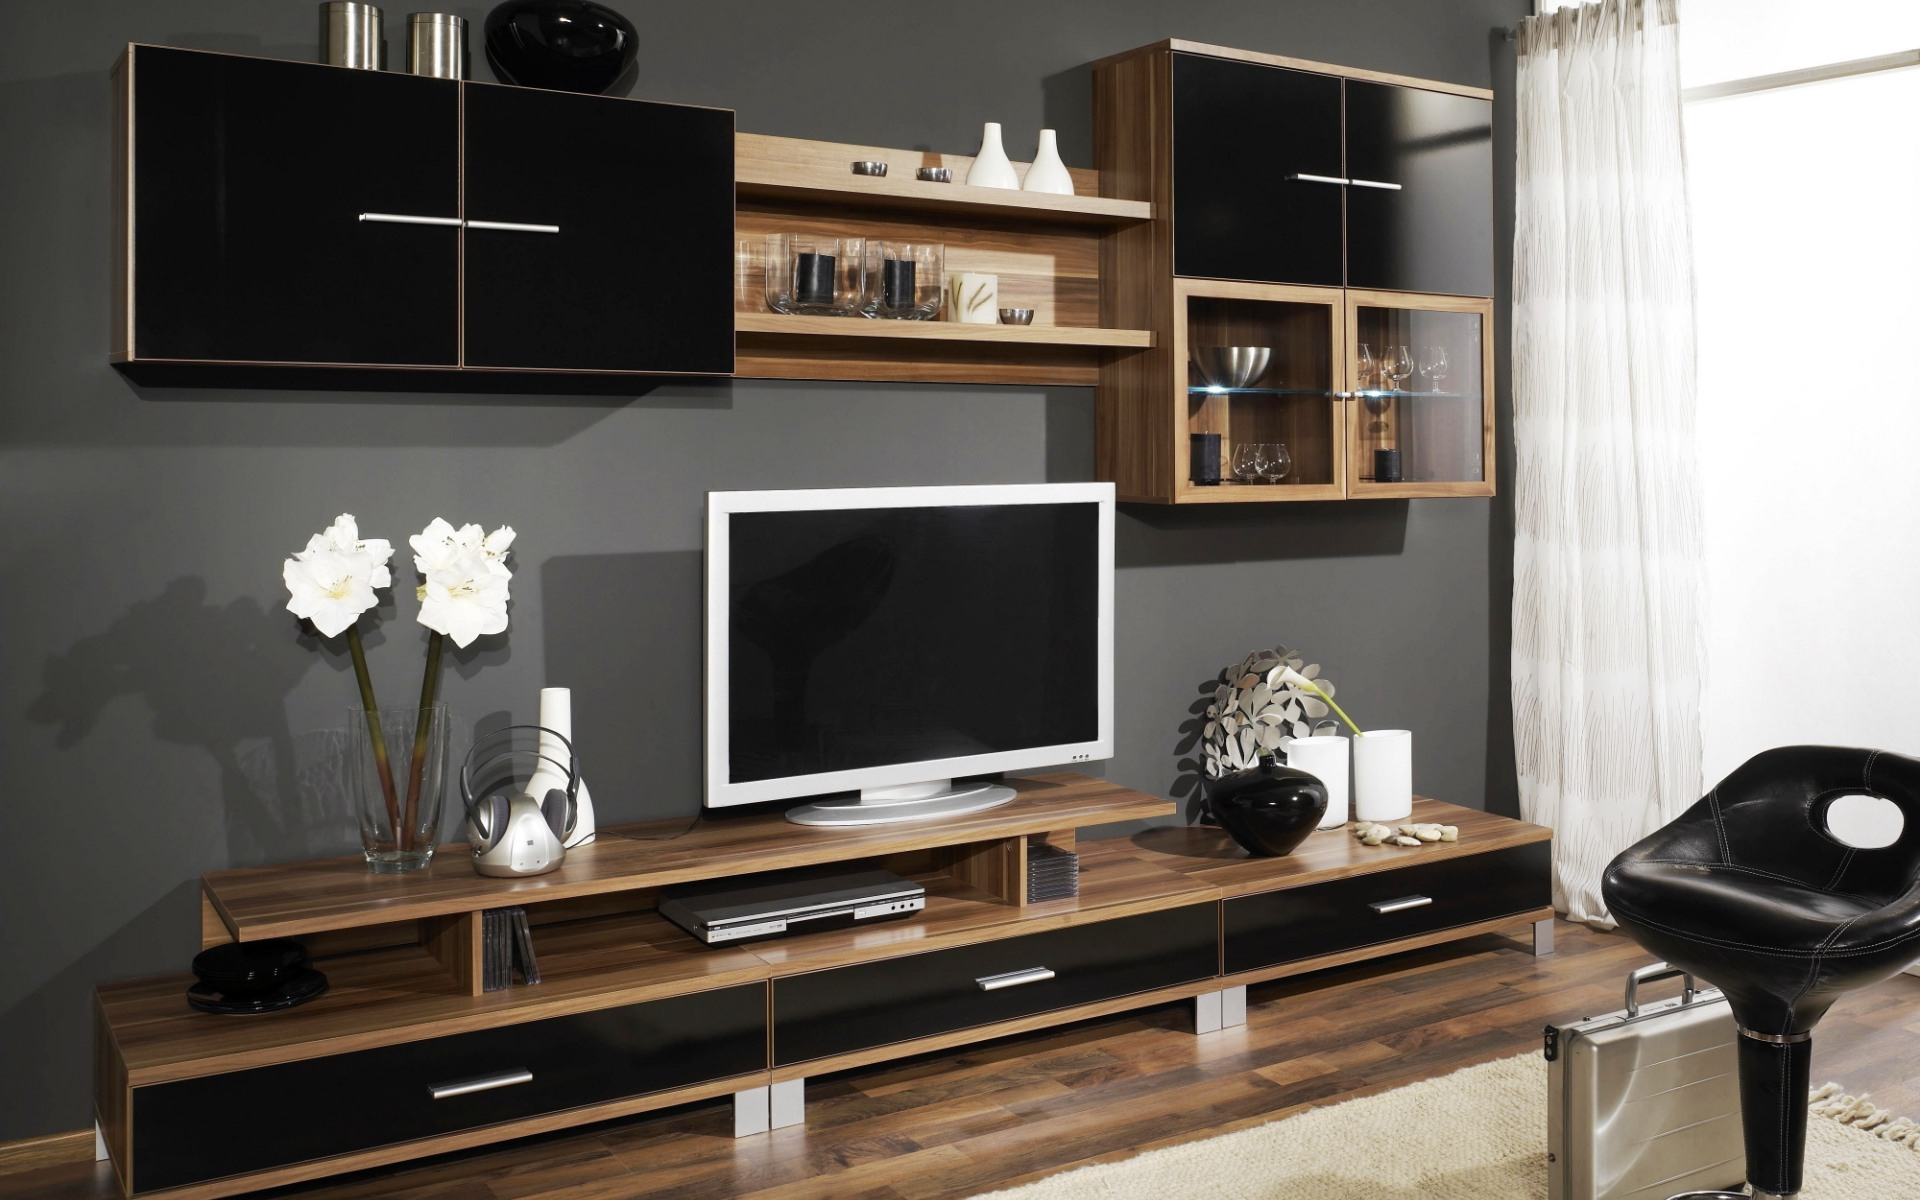 Inspiring Wall Entertainment Center 70 Inch Tv Room Wood Ideas Inside Lauderdale 74 Inch Tv Stands (View 18 of 30)